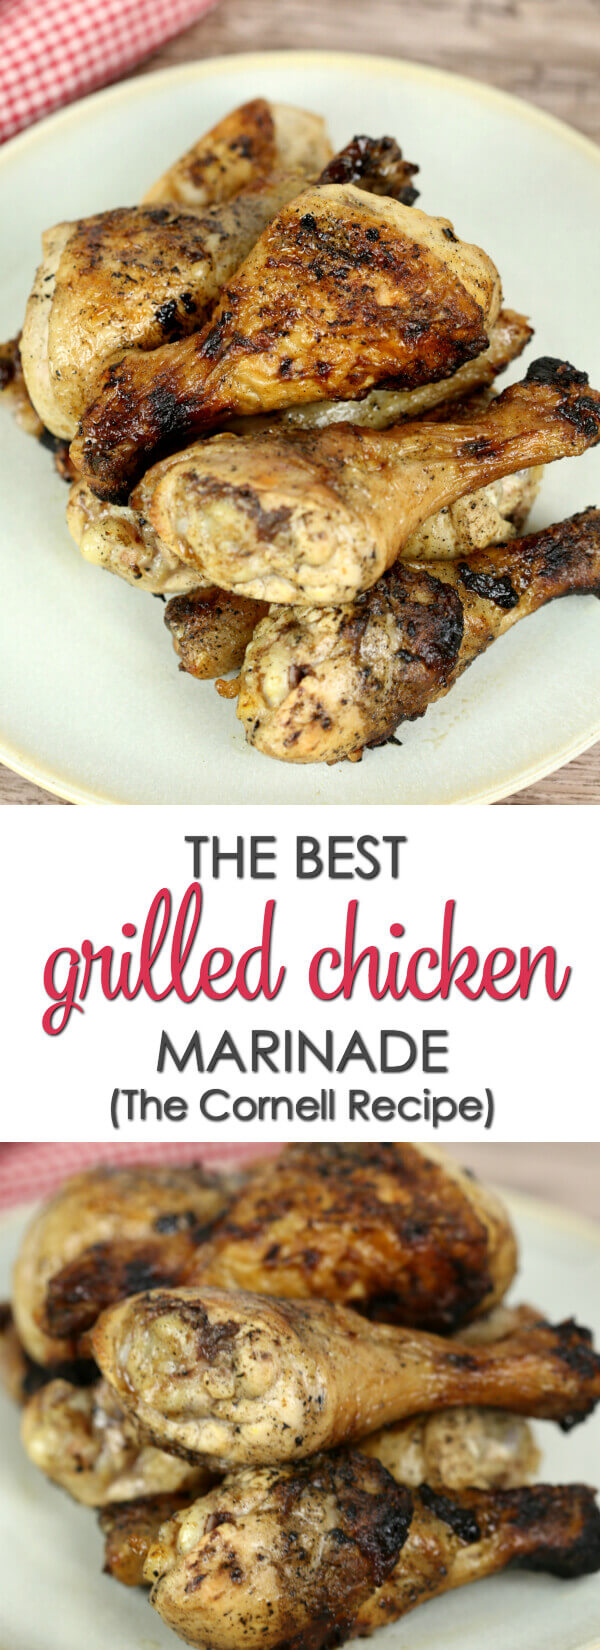 The Best Grilled Chicken Marinade - The Cornell Recipe is the best marinade for grilled chicken. It's the recipe used by all of the best chicken barbecue places